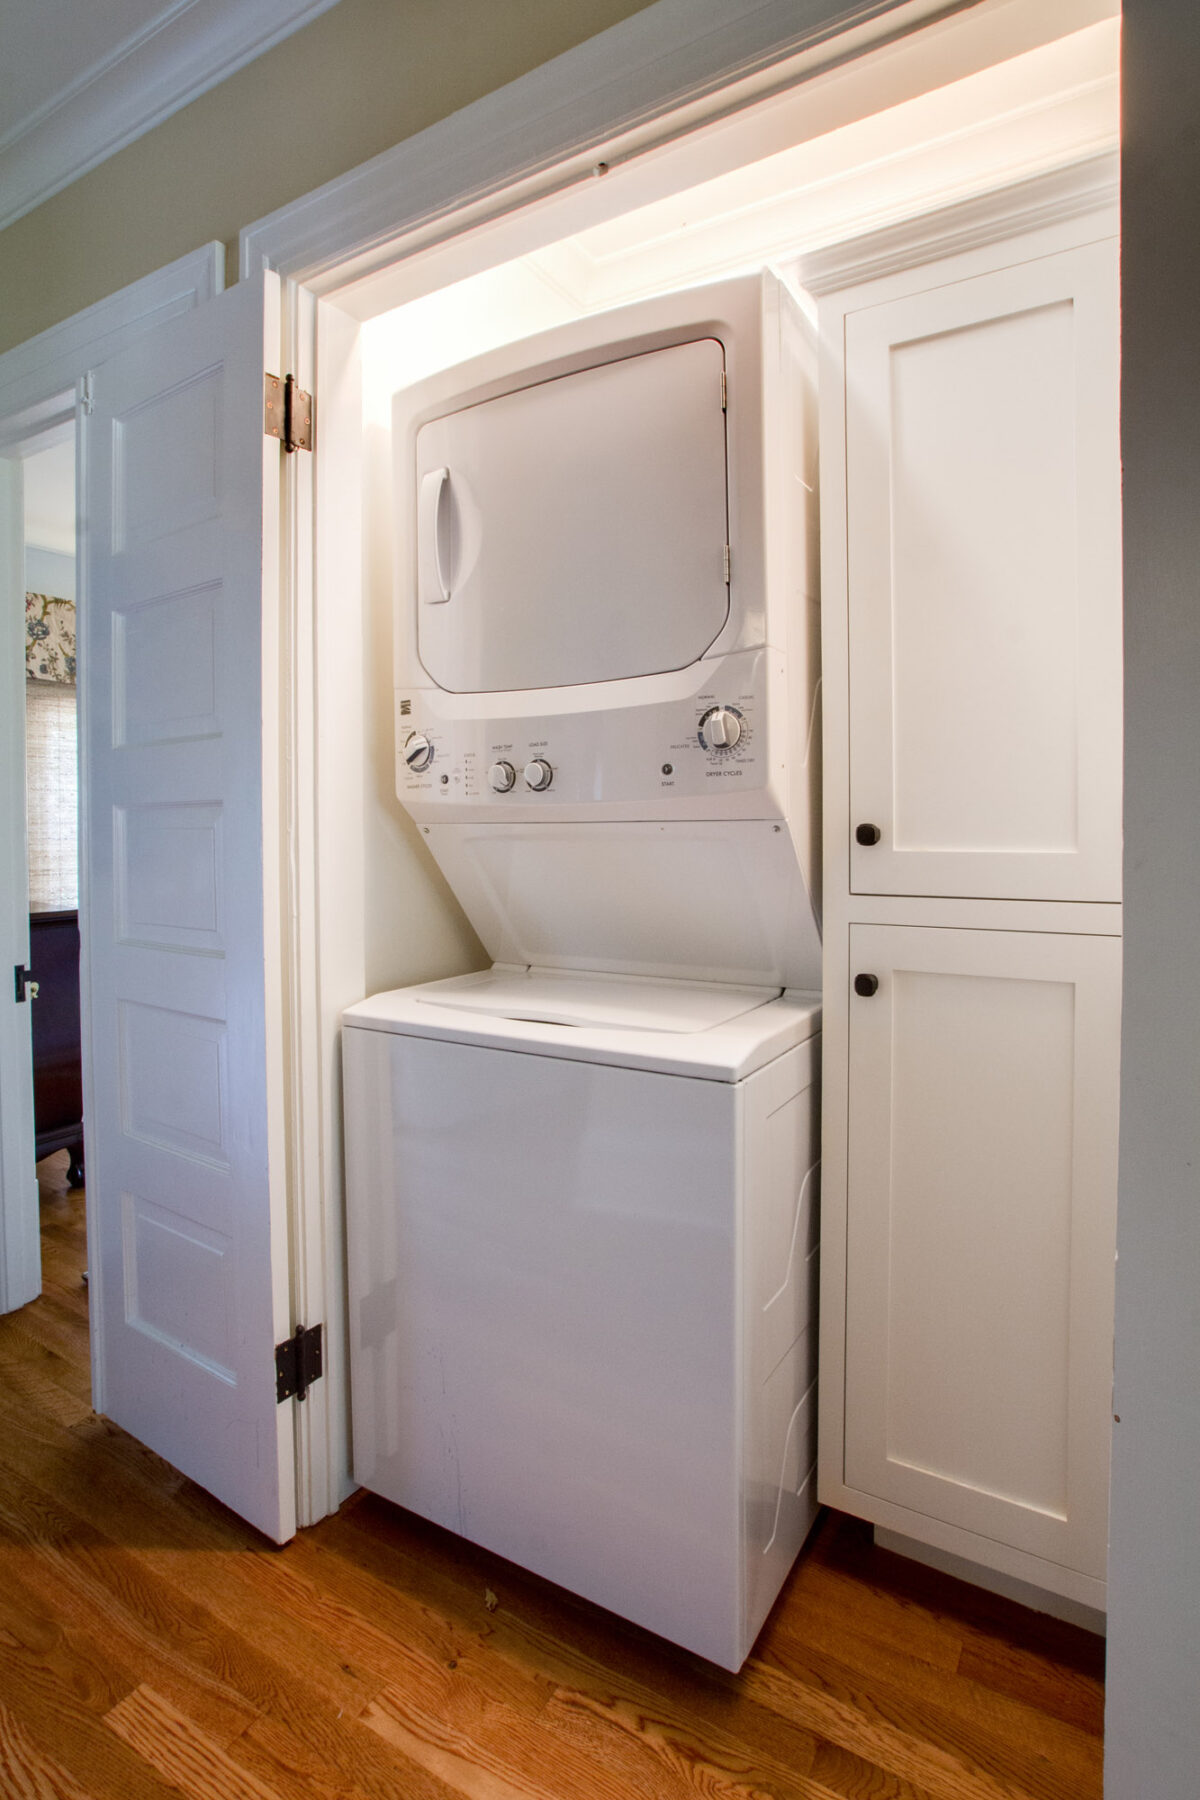 A 2nd floor laundry area with stackable washer/dryer.